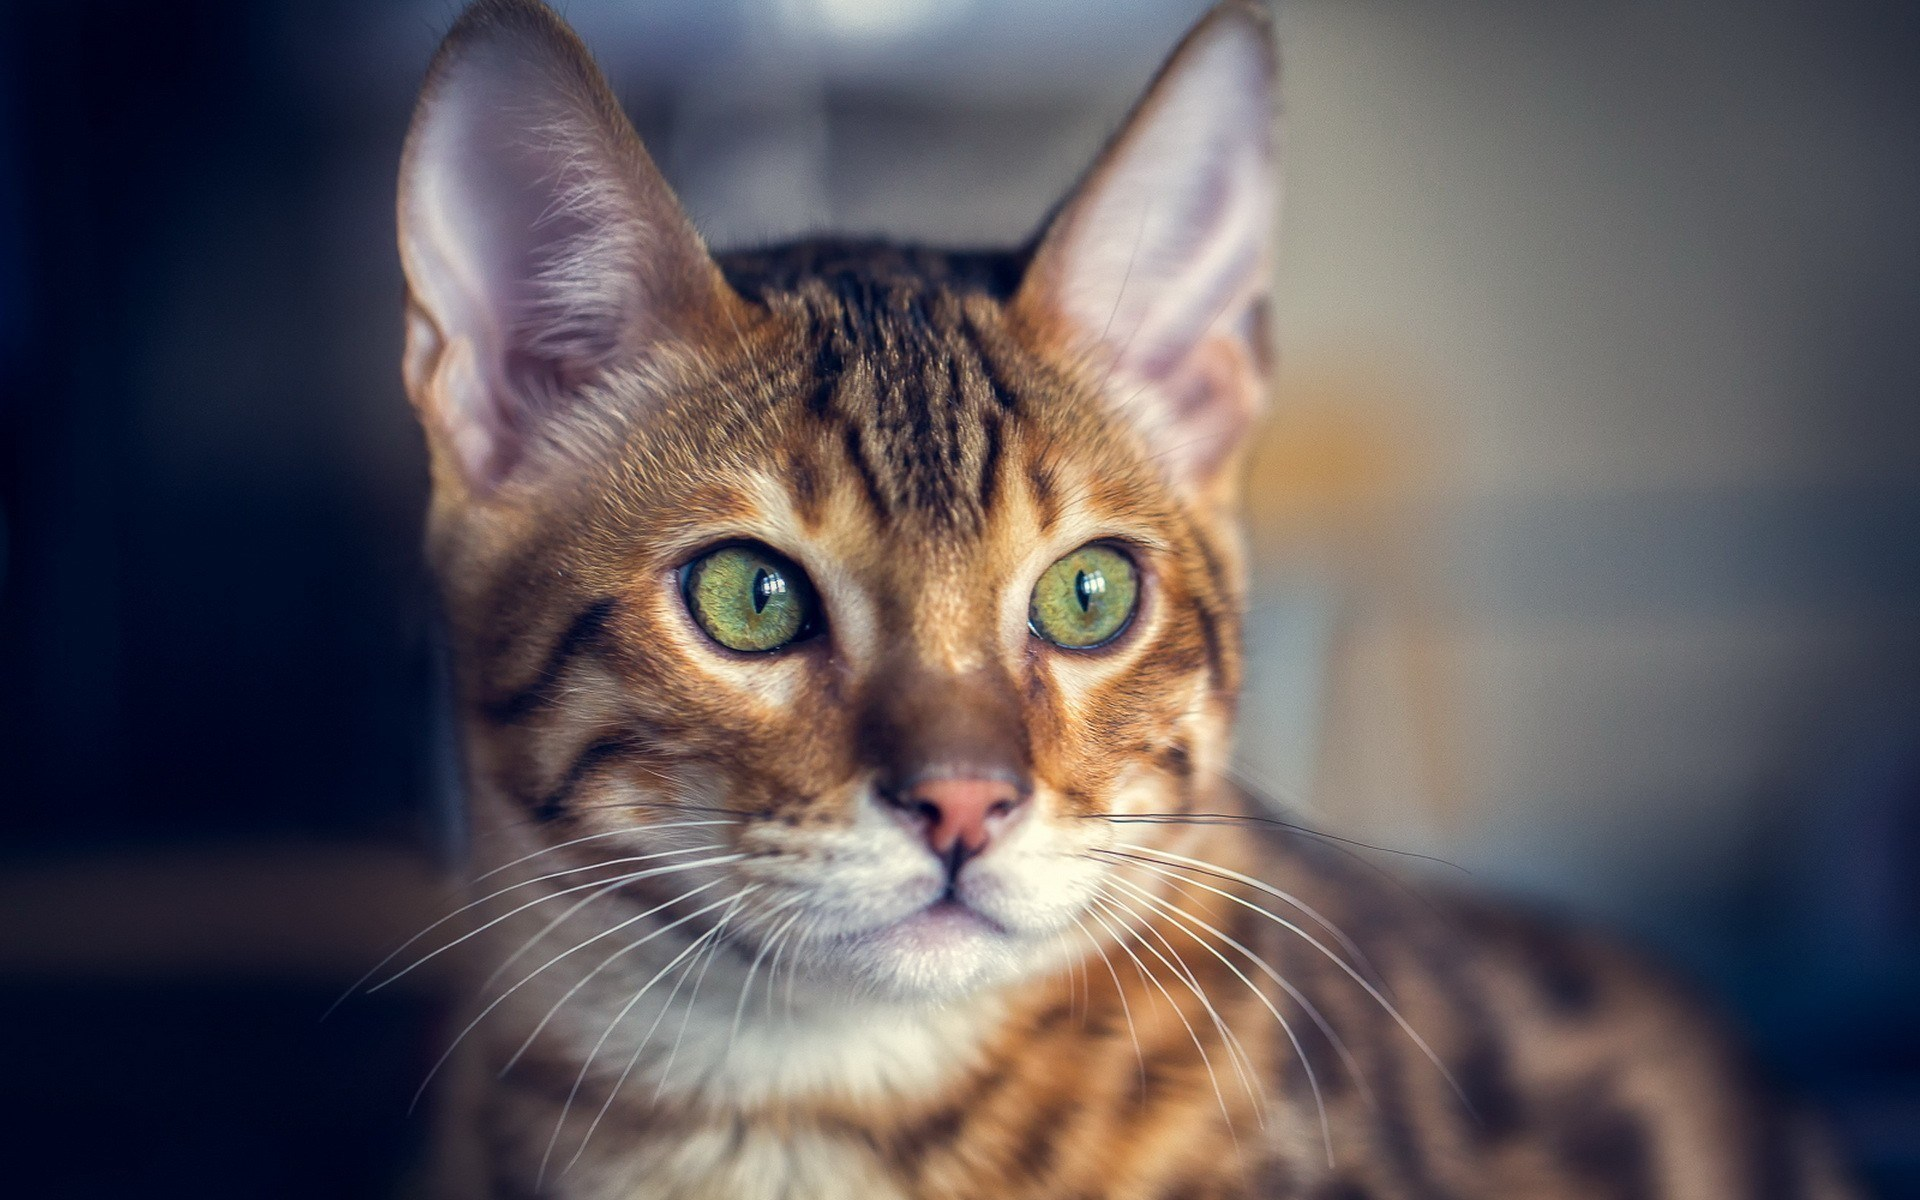 Cat Close Up Image Wallpaper High Definition High